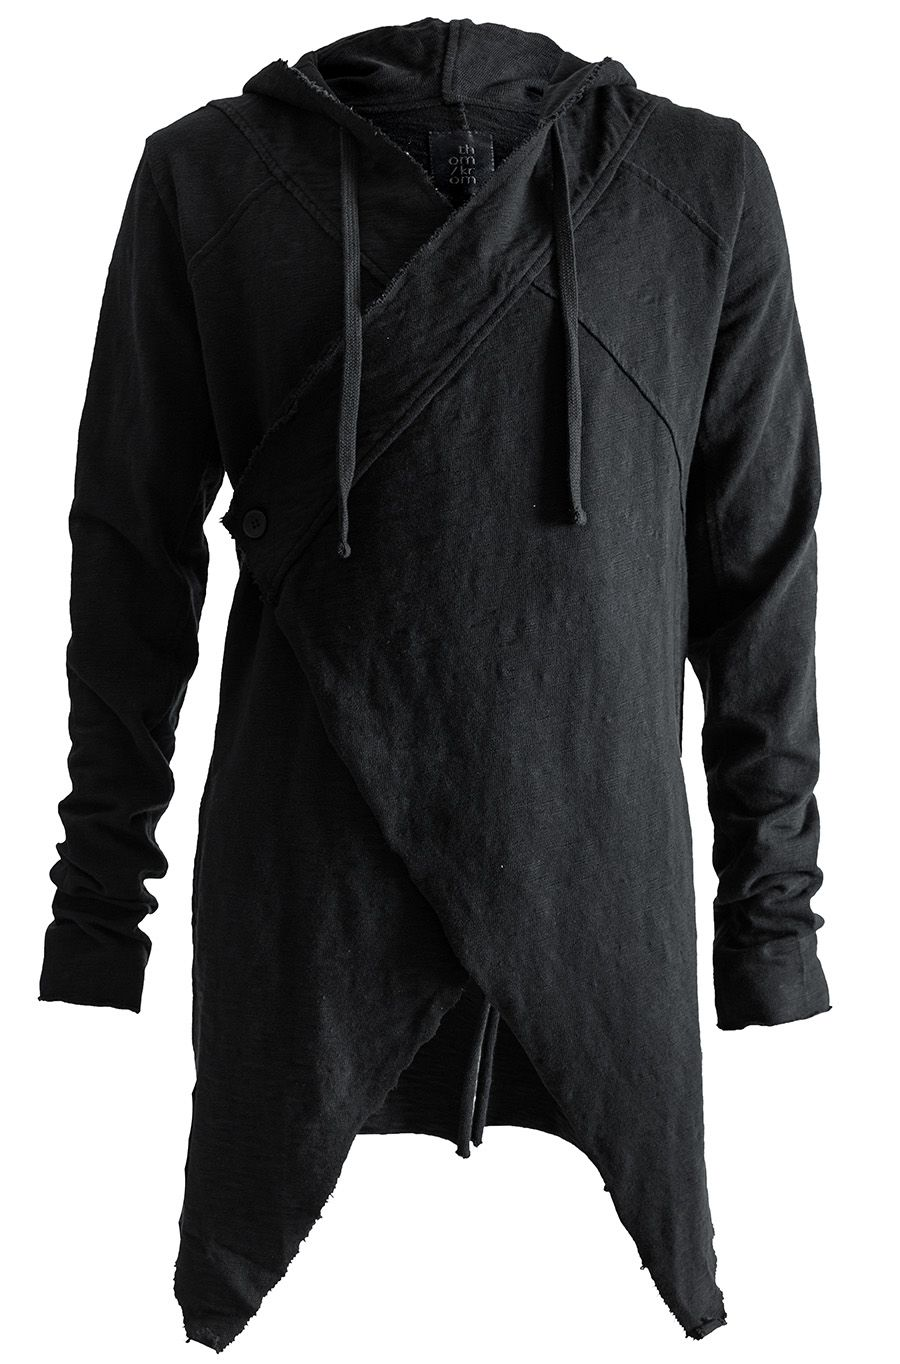 THOM/KROM | Men's black overlapping cross front hooded texture ...